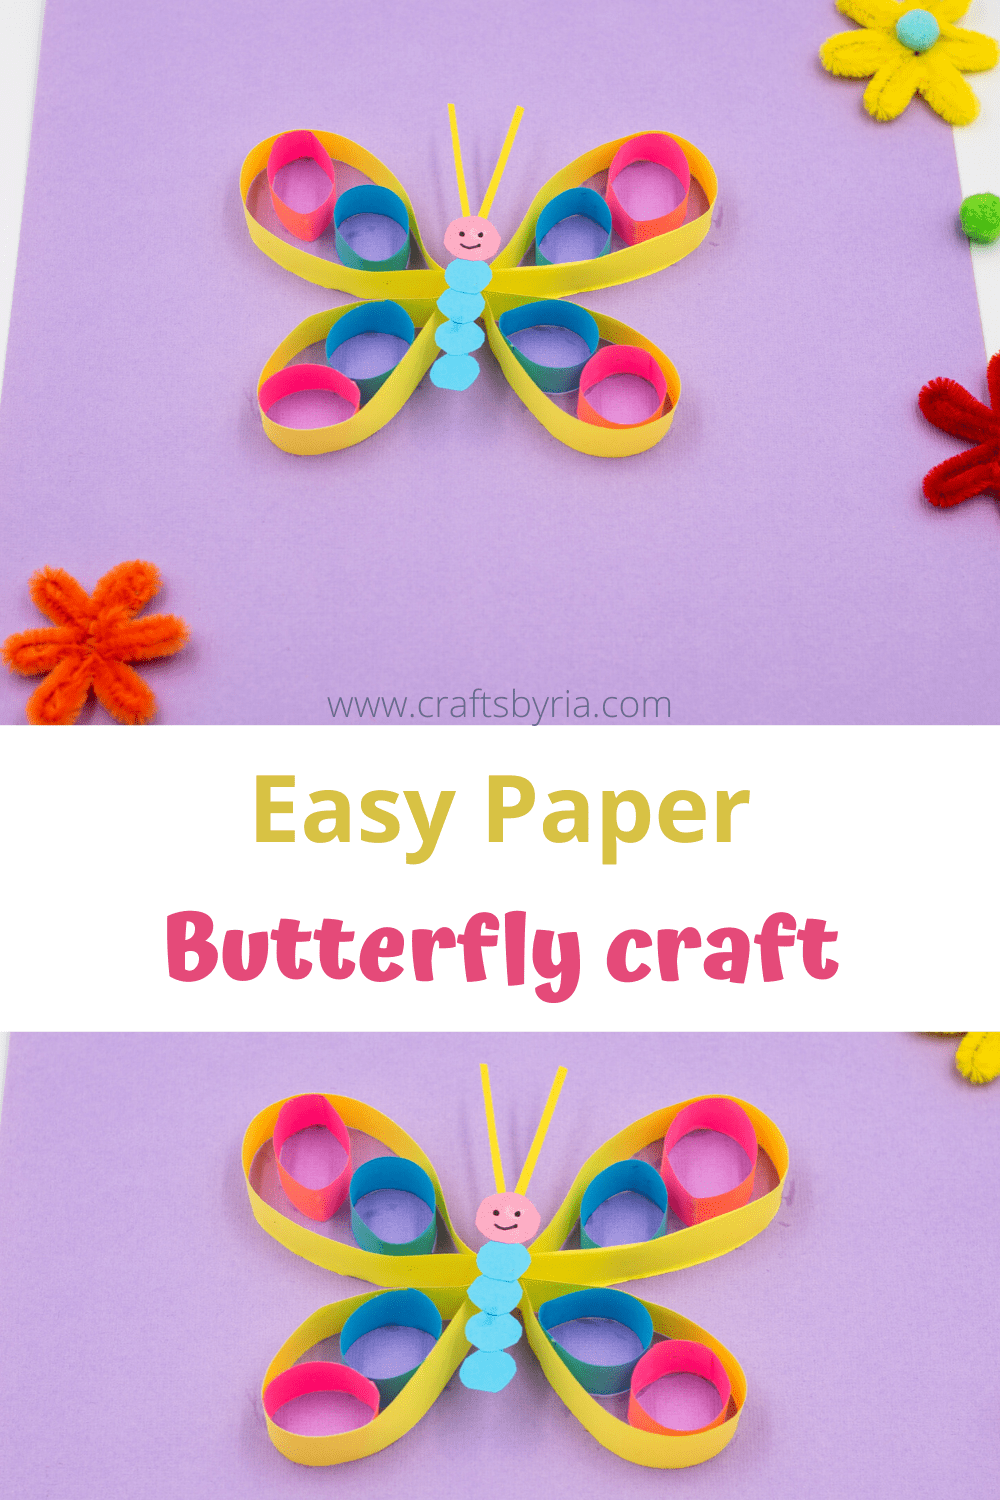 Paper butterfly craft-image for Pinterest